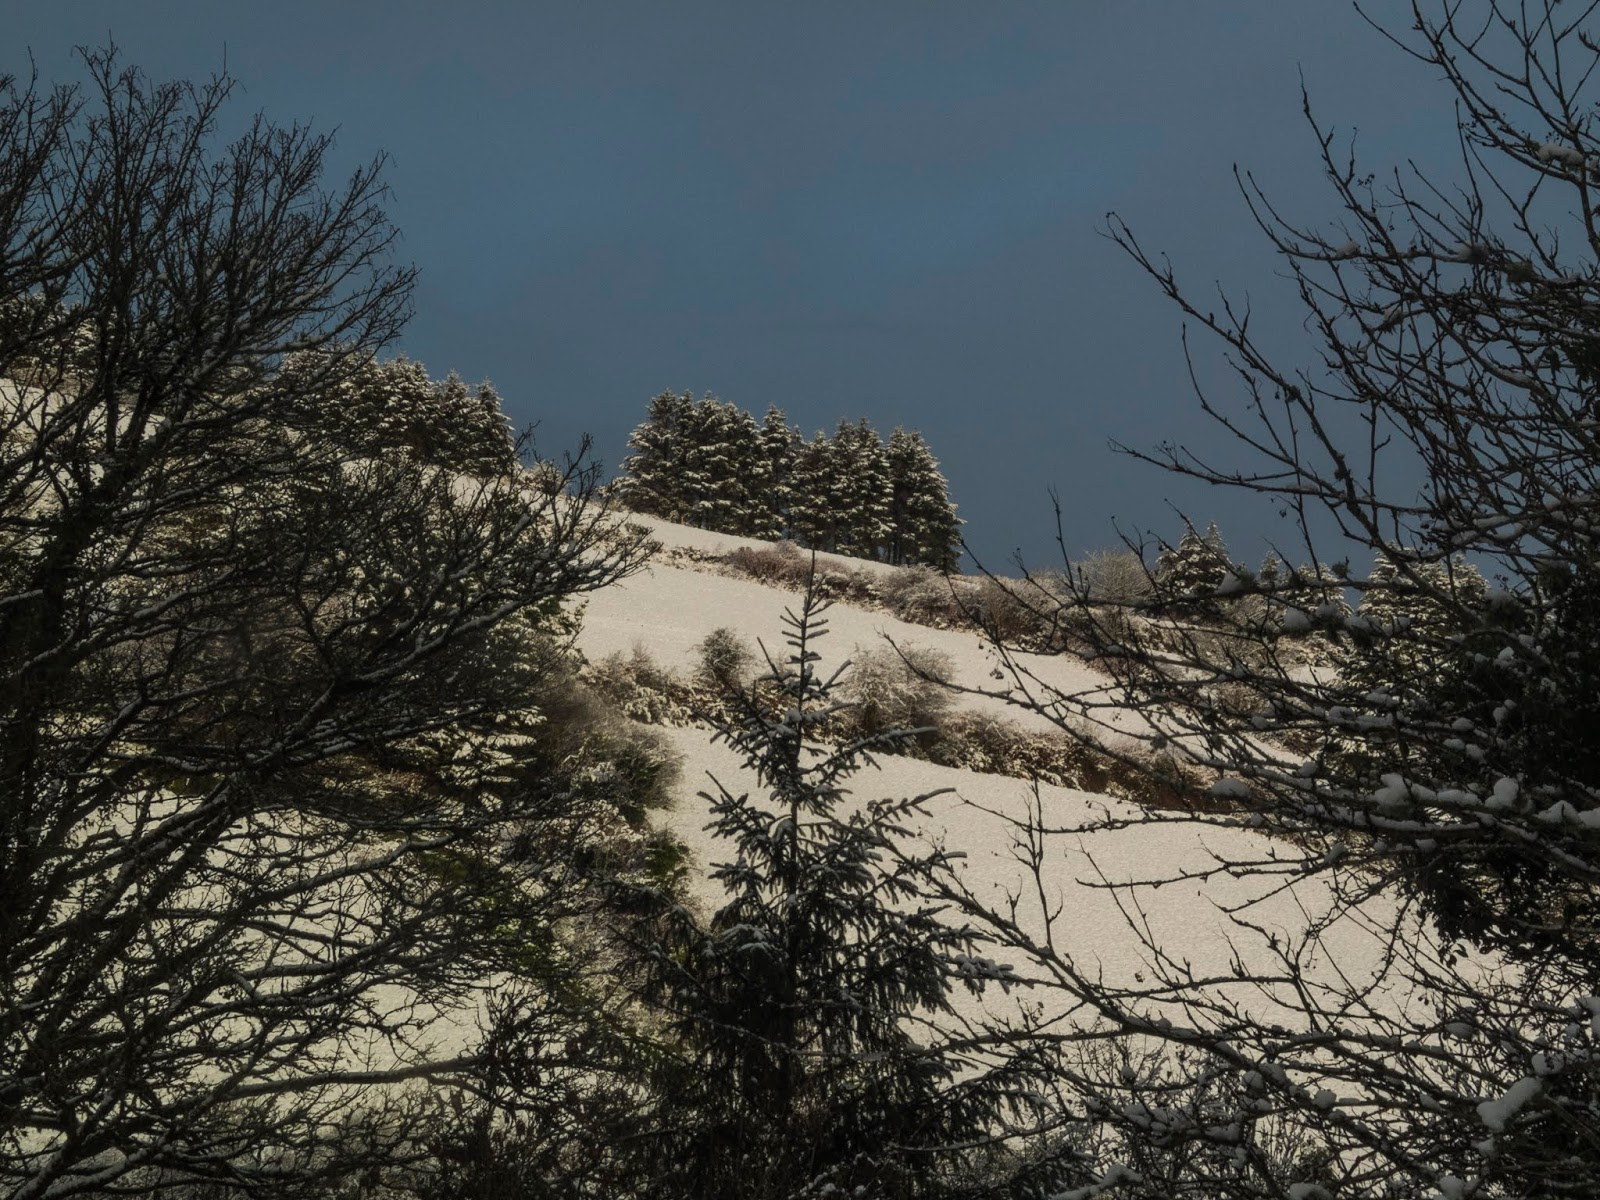 A dramatic dark blue sky looming over a snow covered hillside in North County Cork.